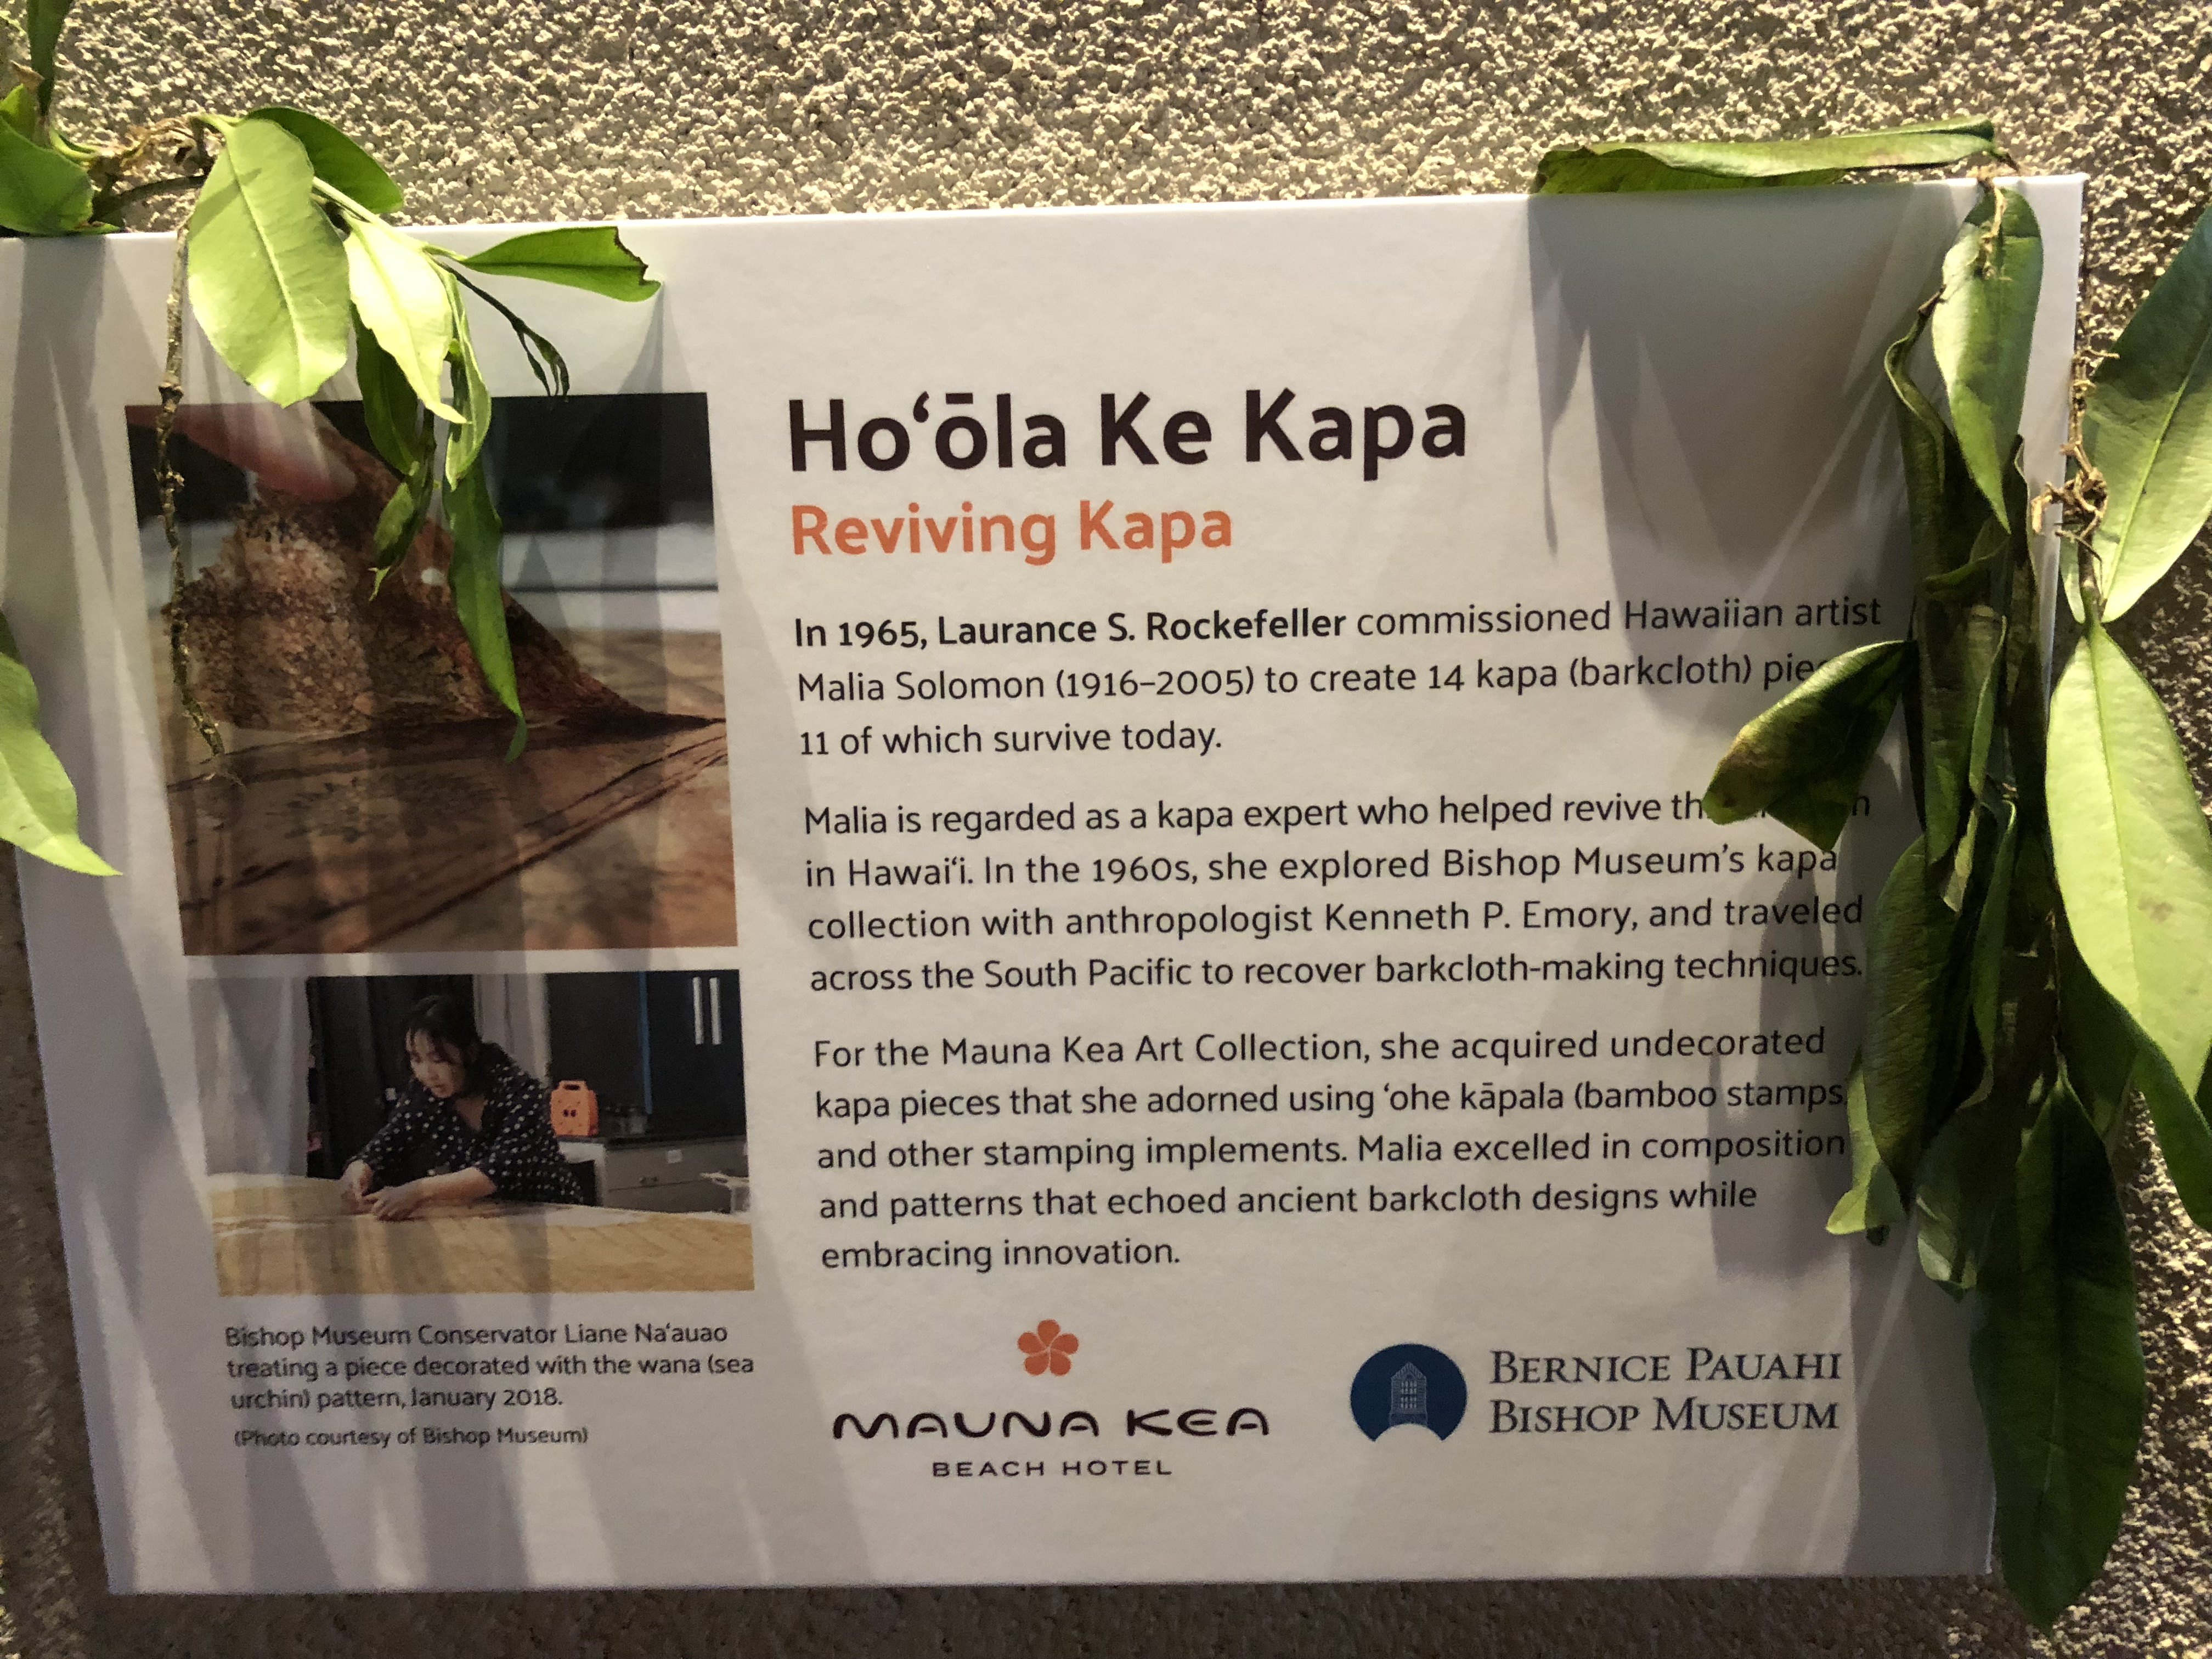 Restoration of Kapa Collection at Mauna Kea Beach Hotel